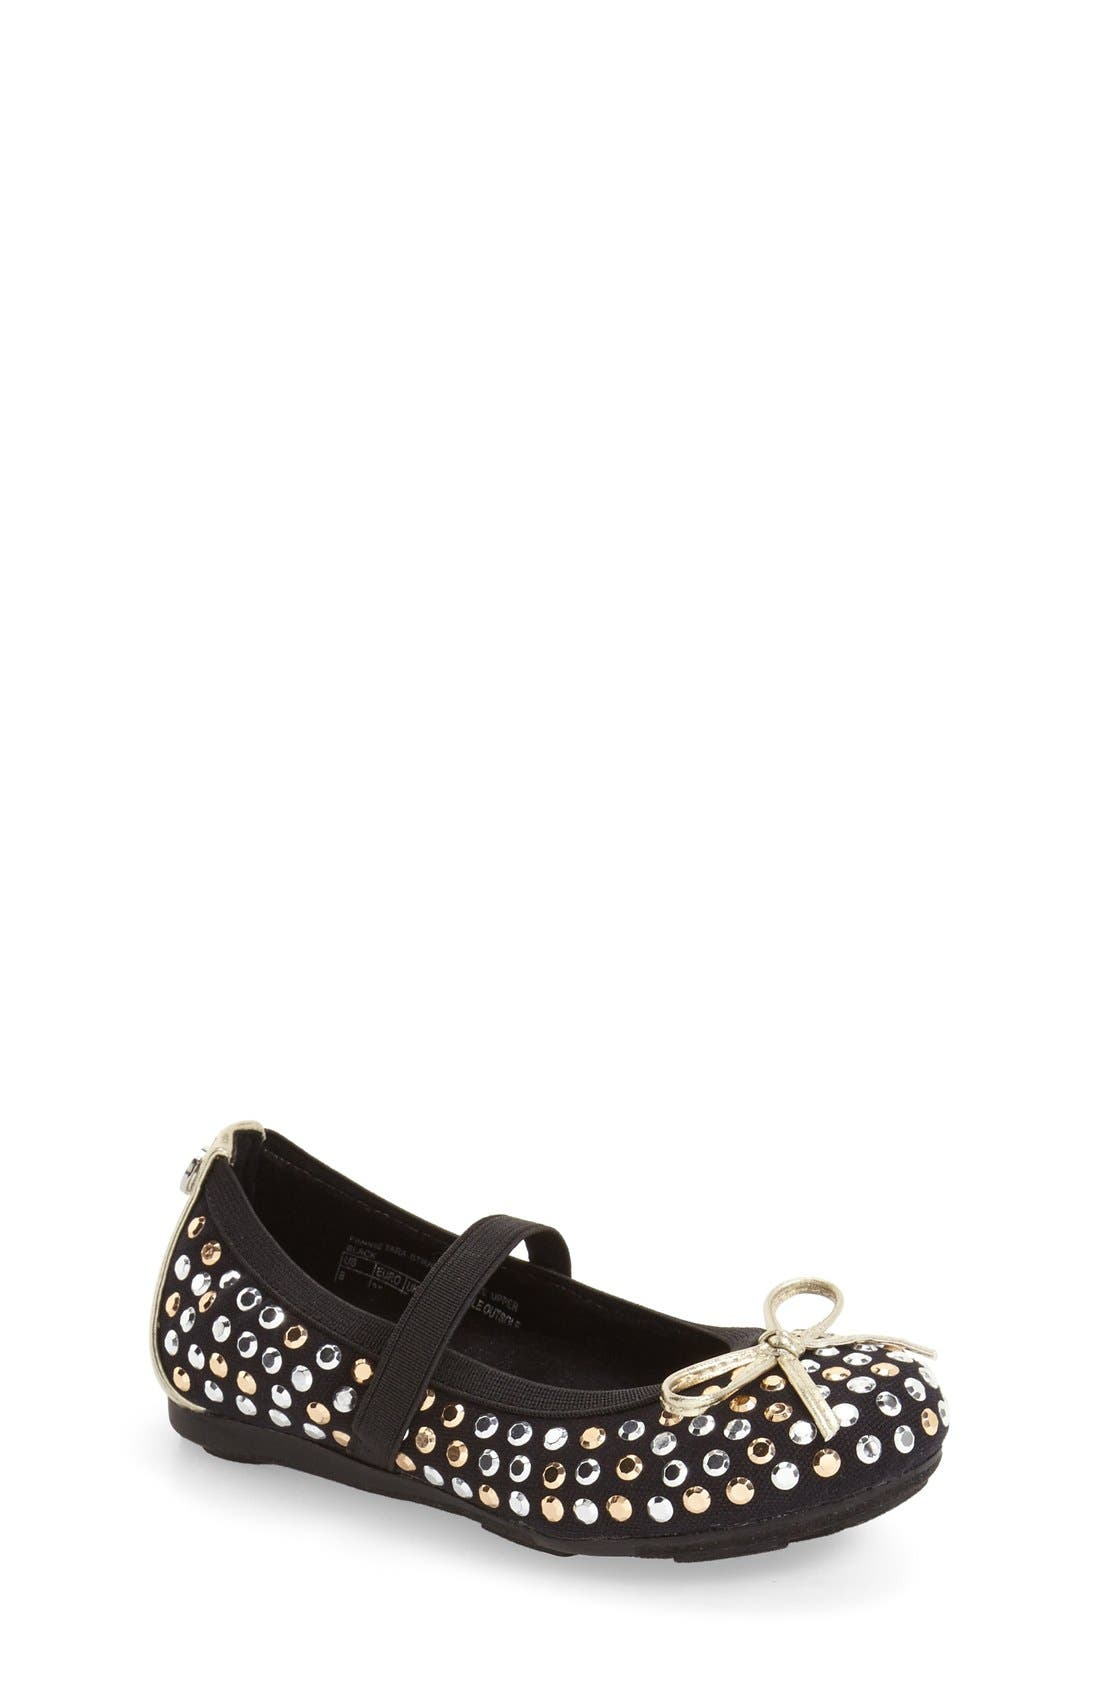 Alternate Image 1 Selected - Stuart Weitzman 'Fannie Tara' Studded Flat (Toddler)